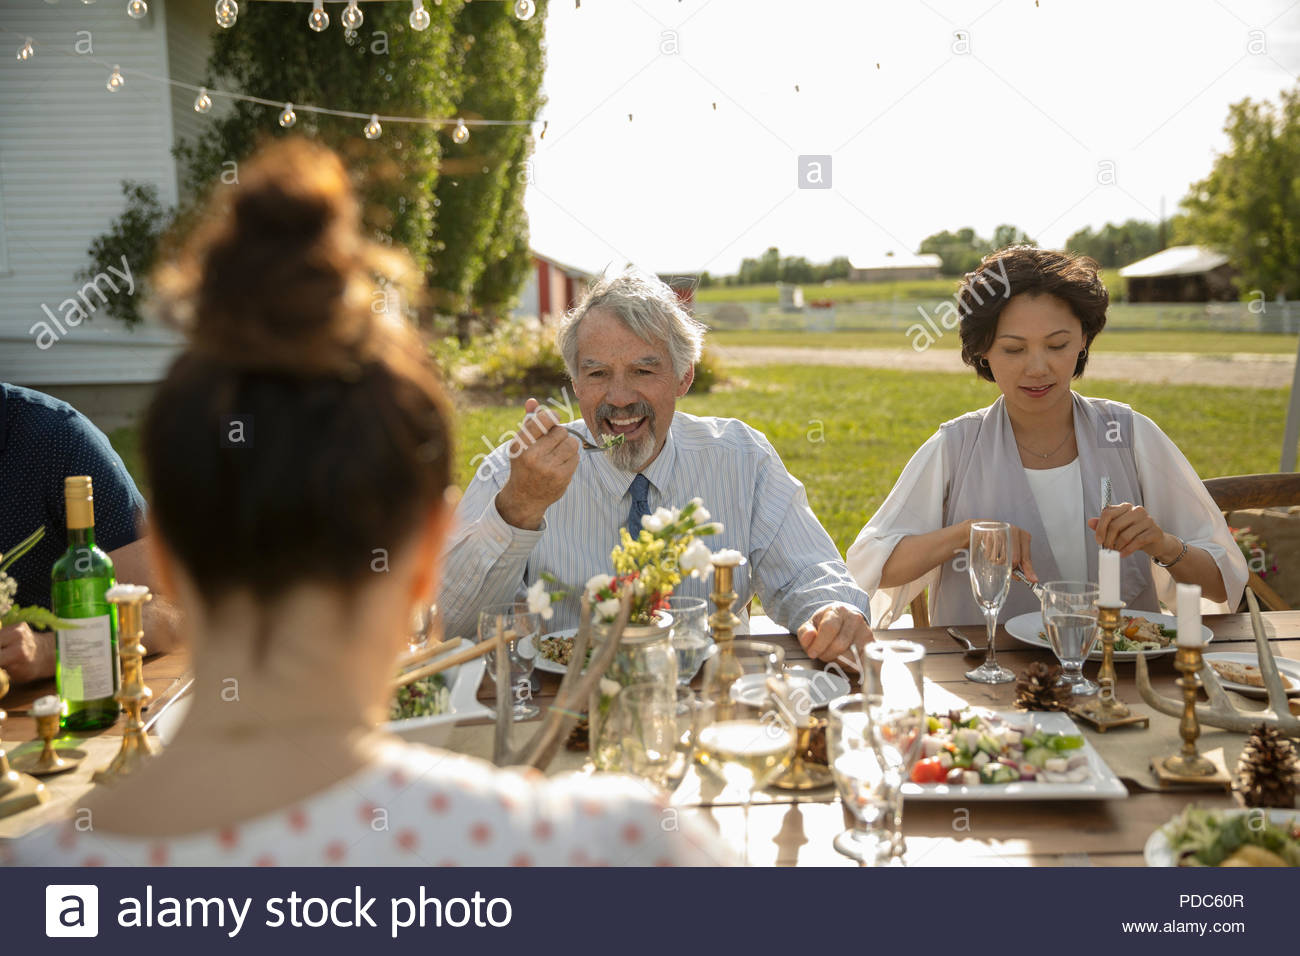 Friends enjoying garden party lunch - Stock Image